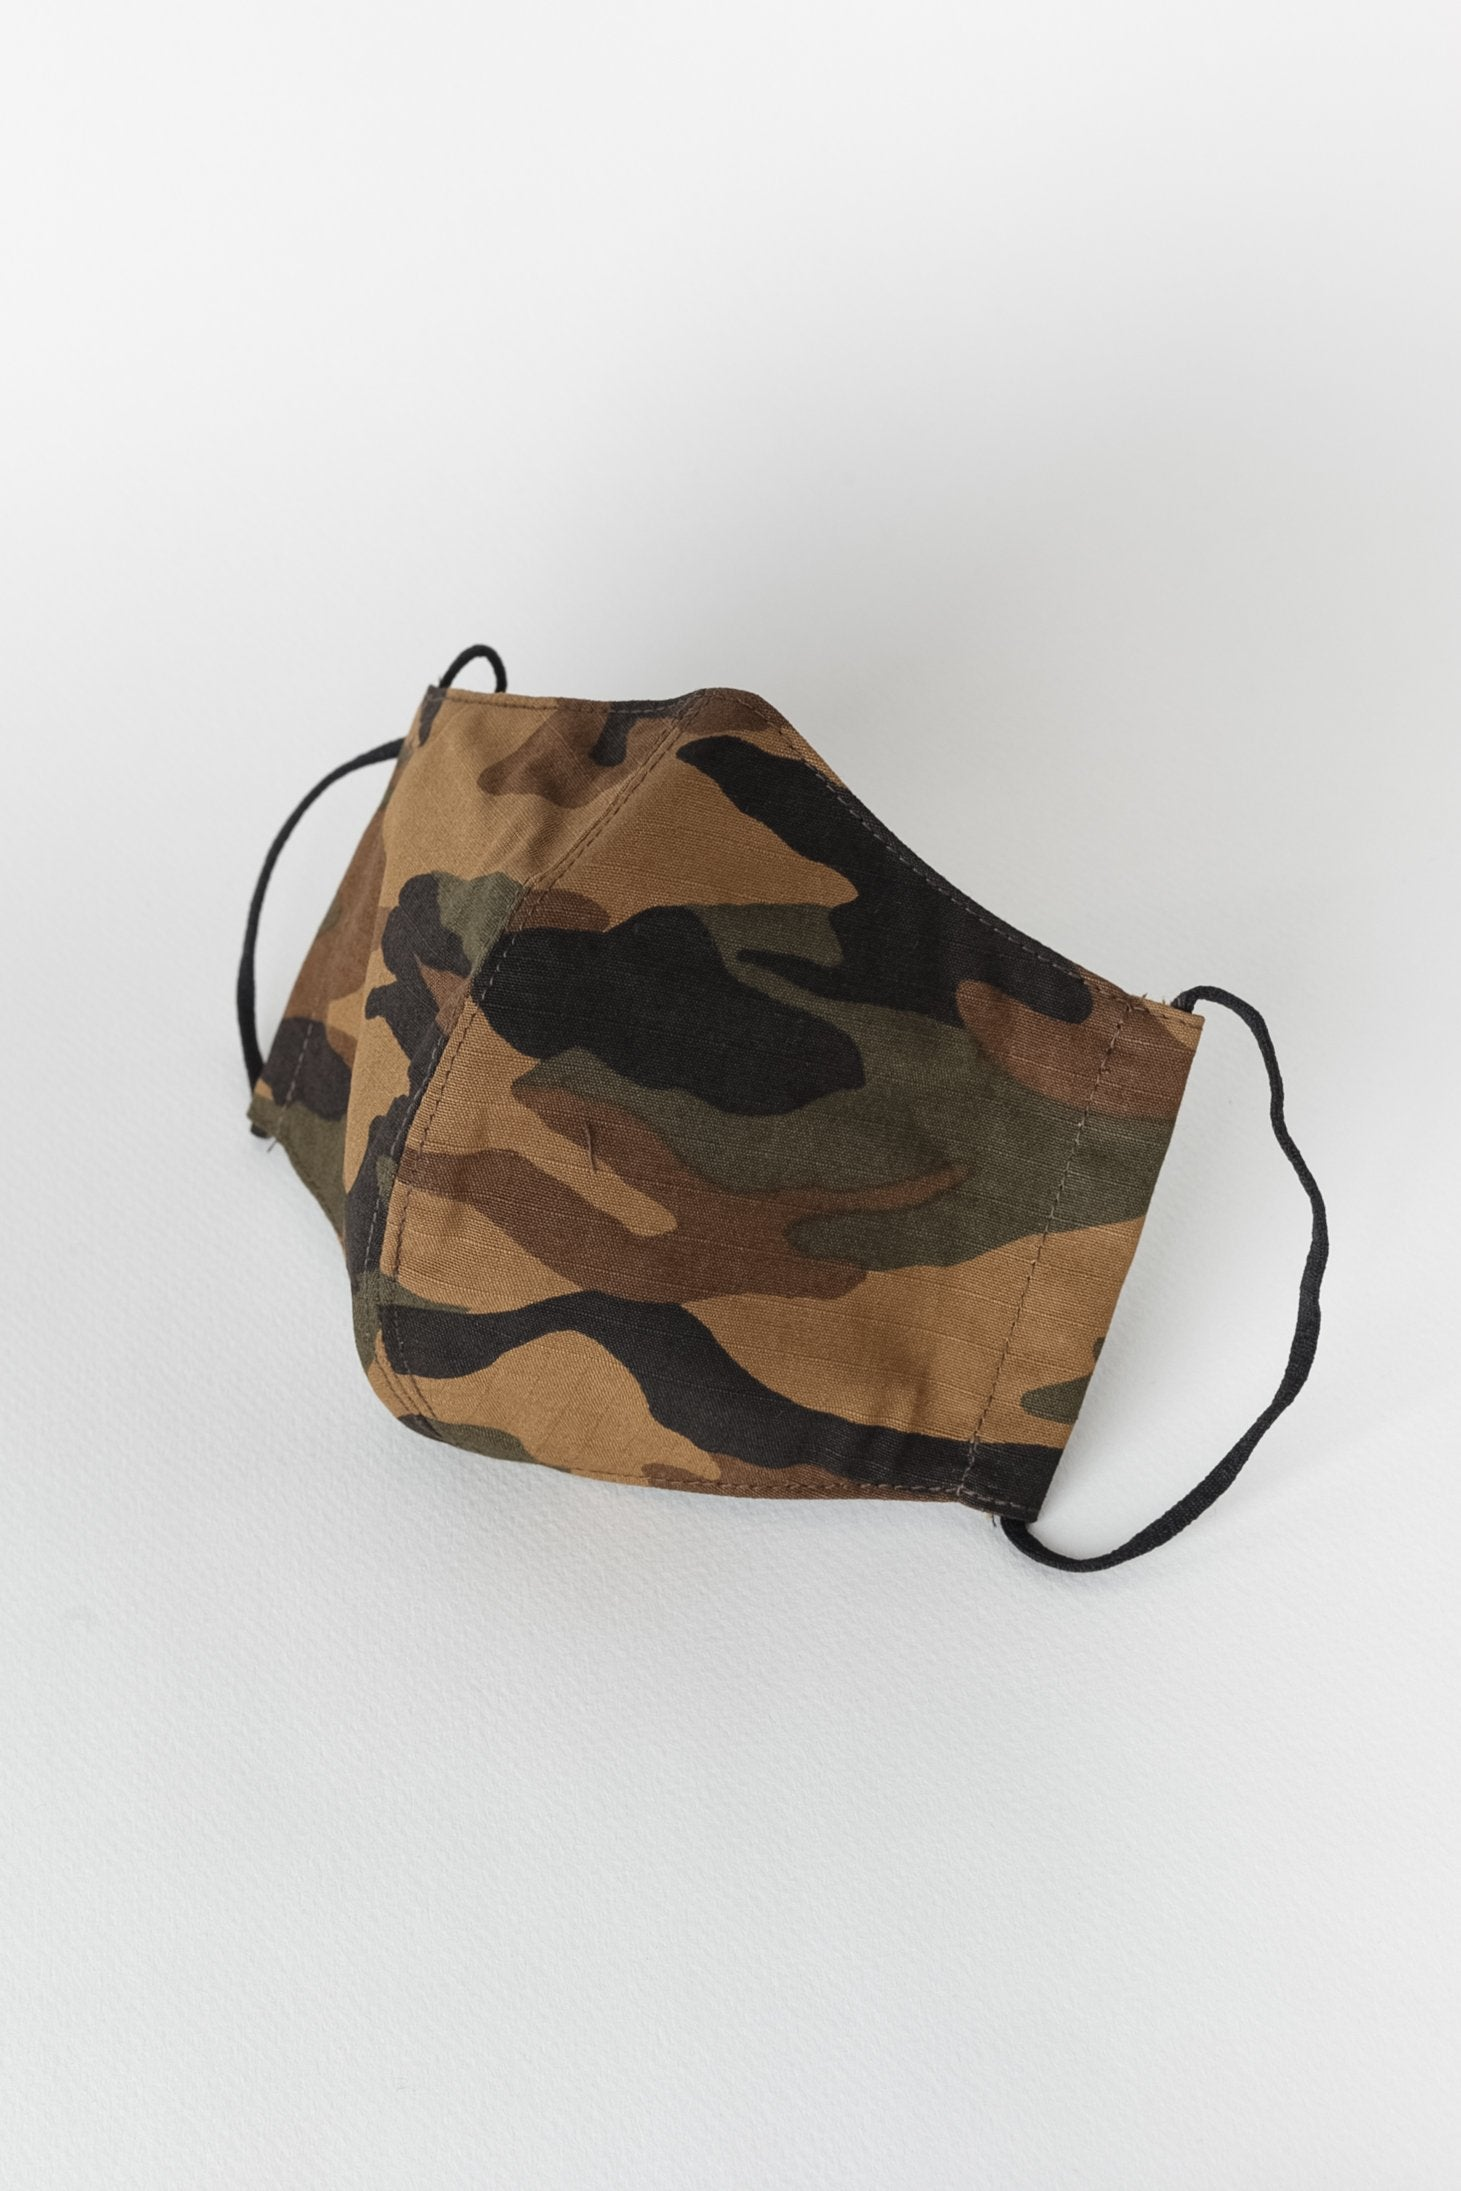 Japanese Camouflage Printed Ripstop Face Mask in Army 01